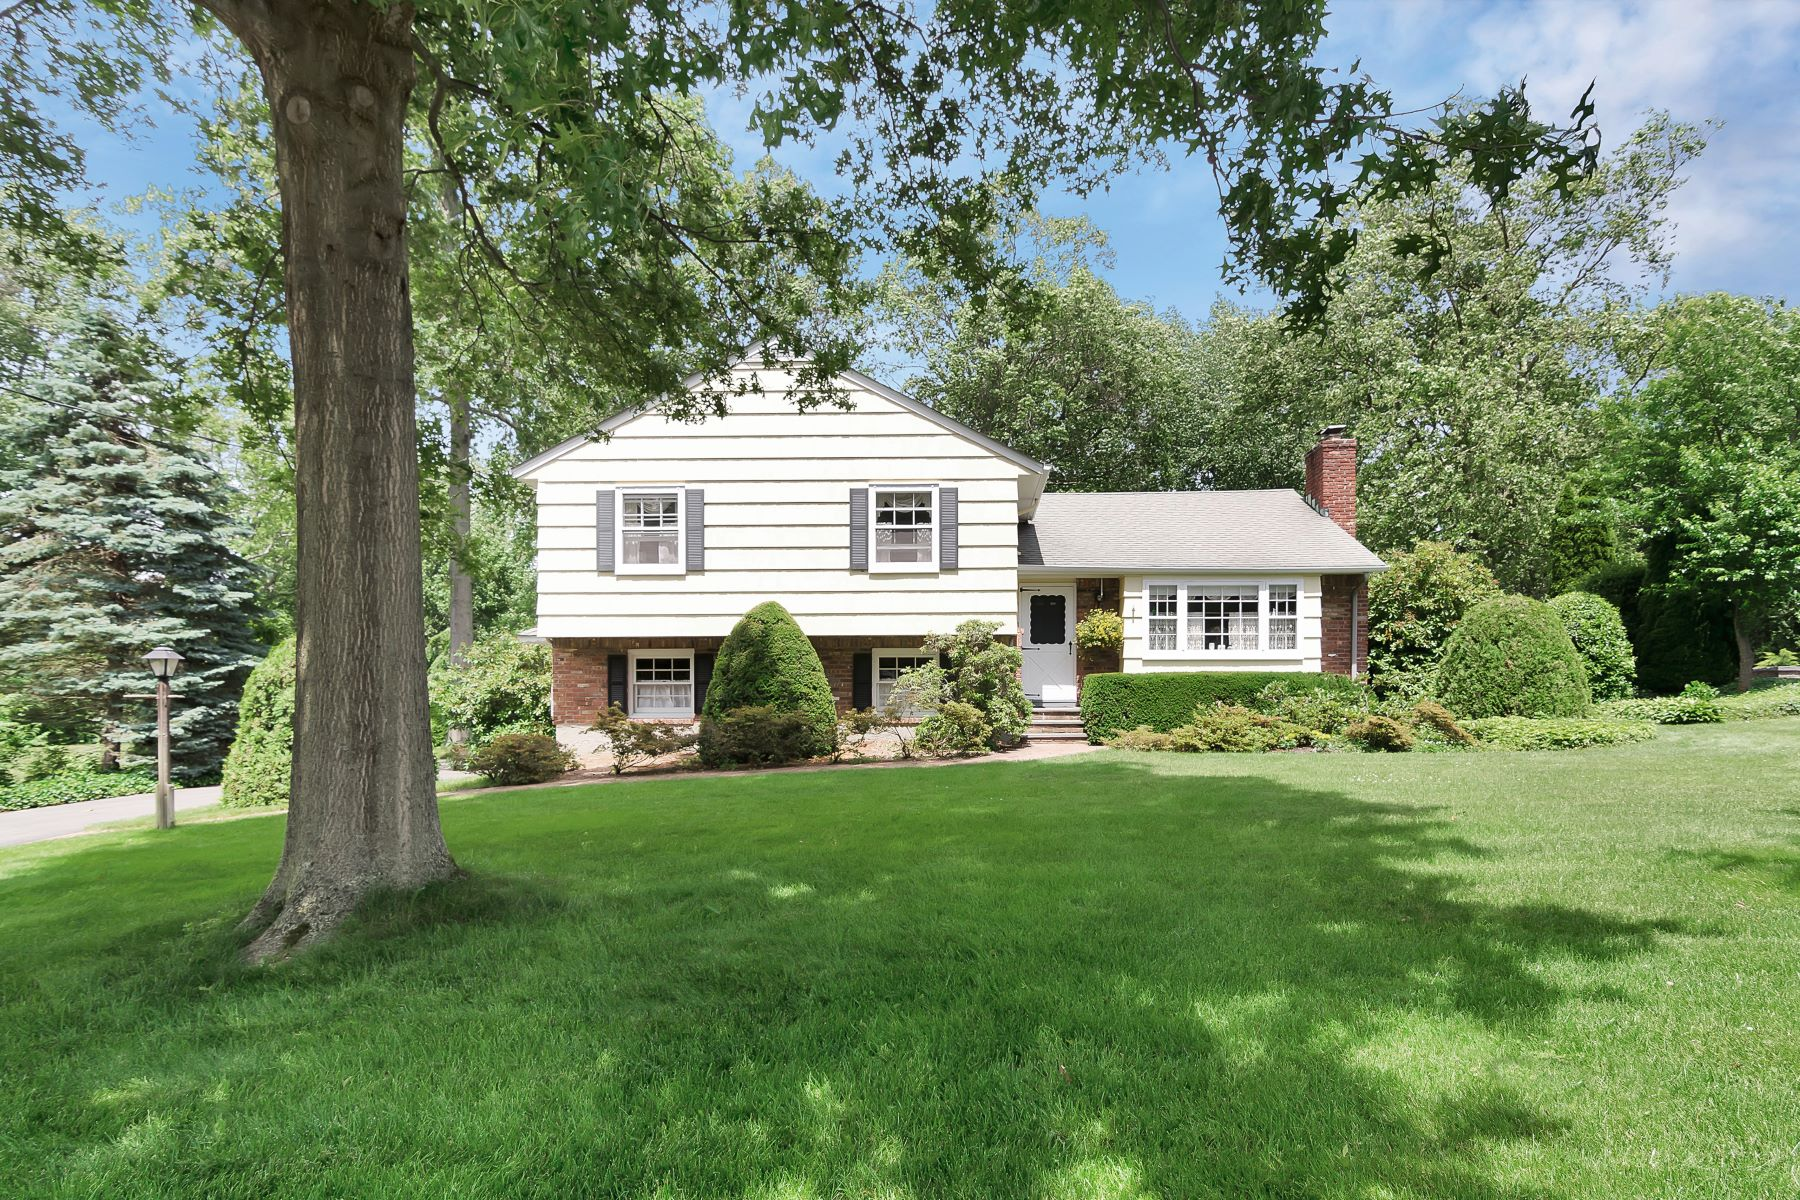 Single Family Home for Sale at Quaker Ridge Charmer 5 Archer Dr Stony Brook, New York, 11790 United States